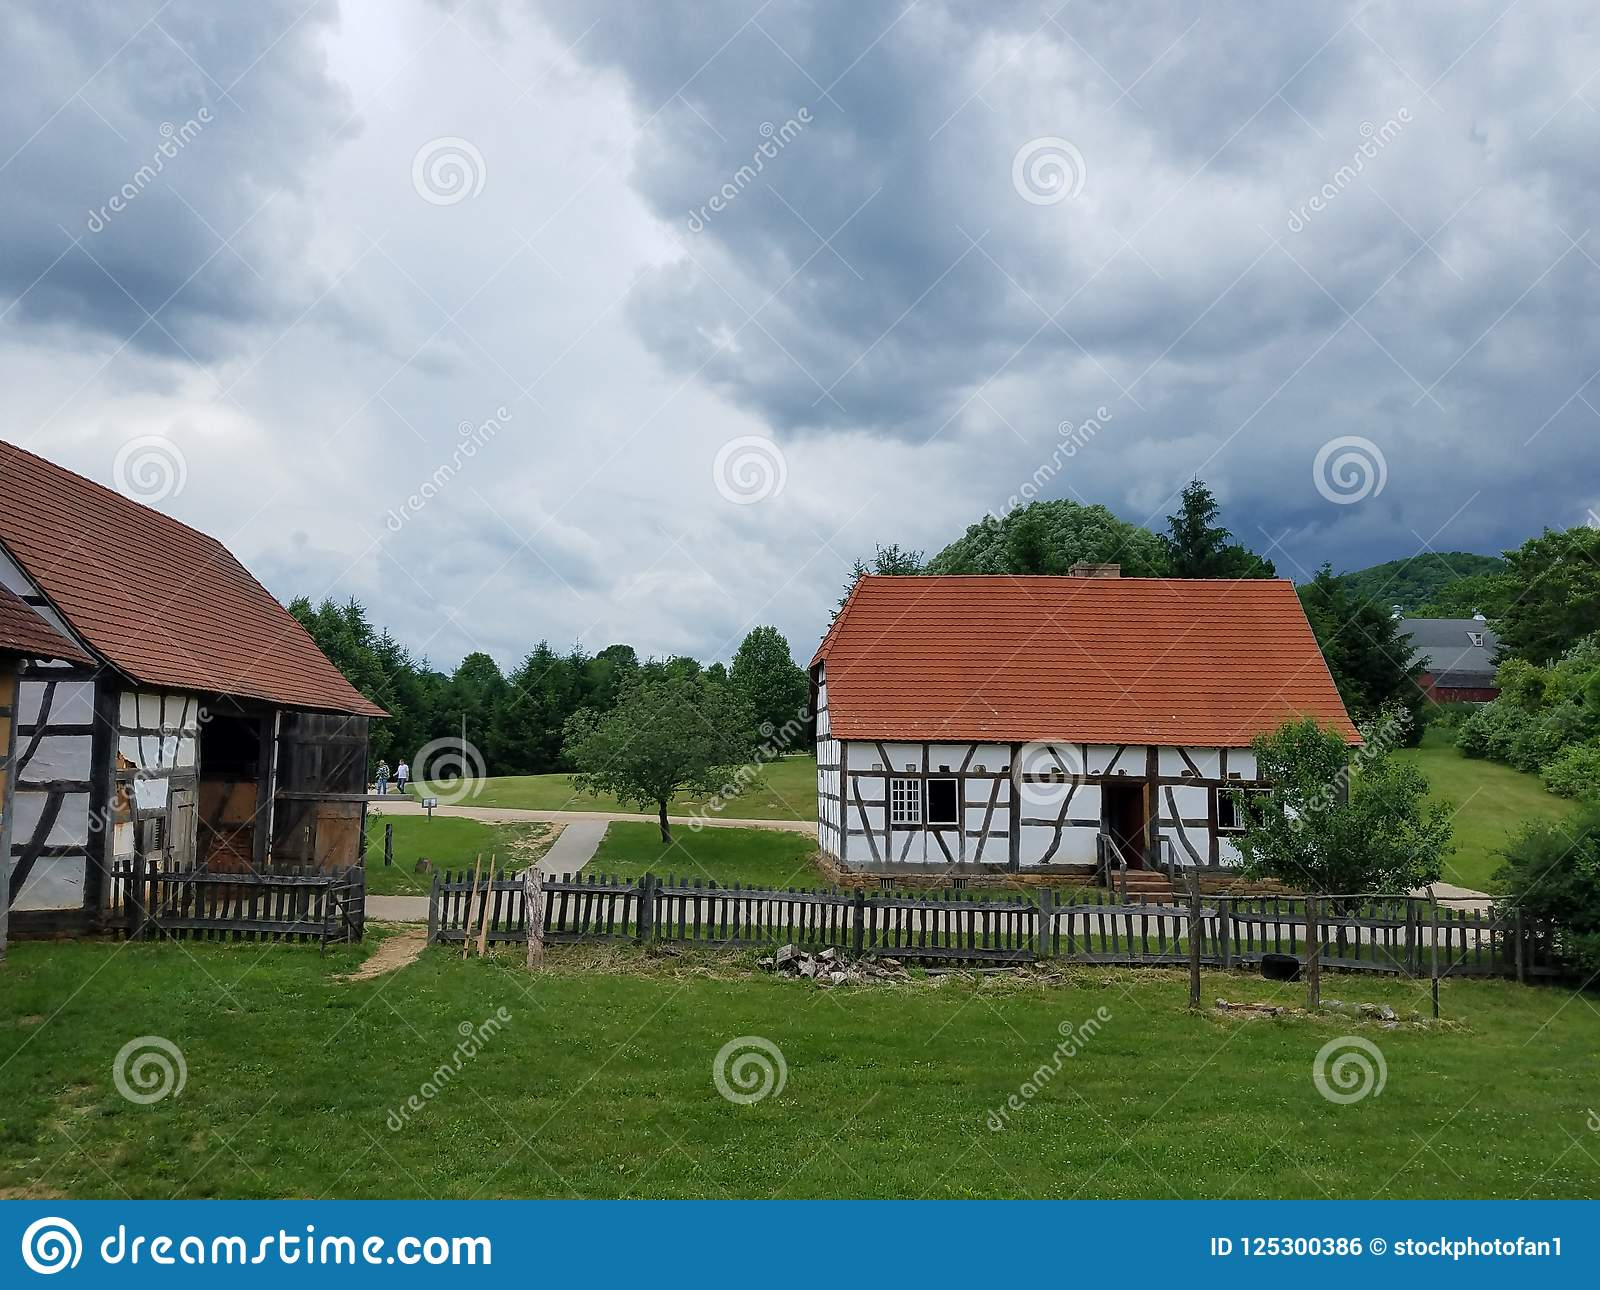 White Wood Building With Red Or Orange Shingle Roof And Green